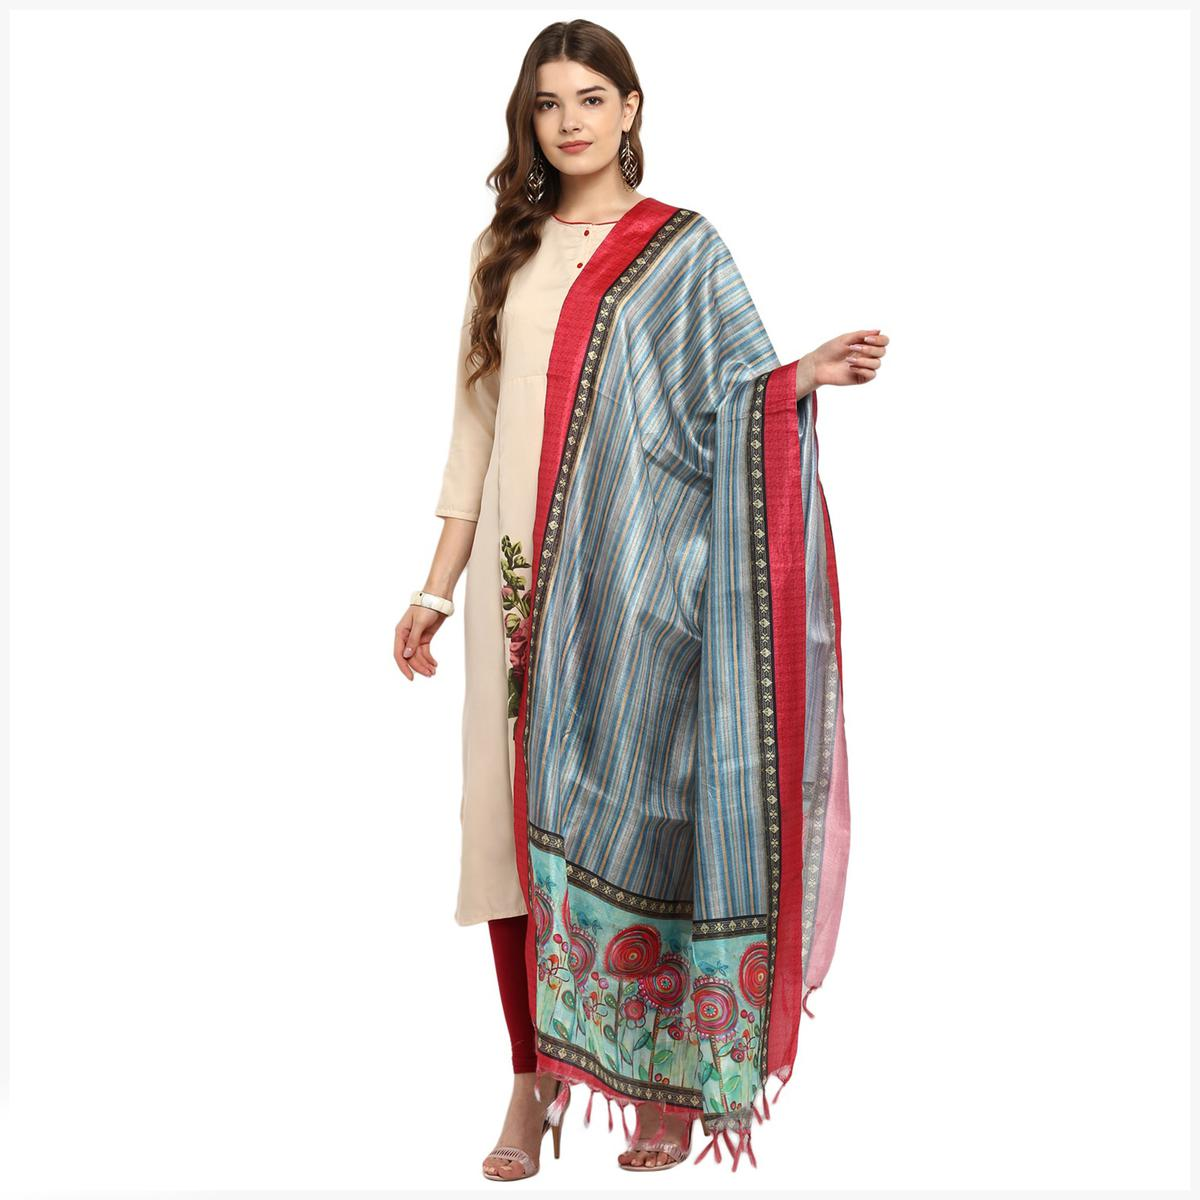 Marvellous Grey Colored Digital Printed Cotton Silk Dupatta